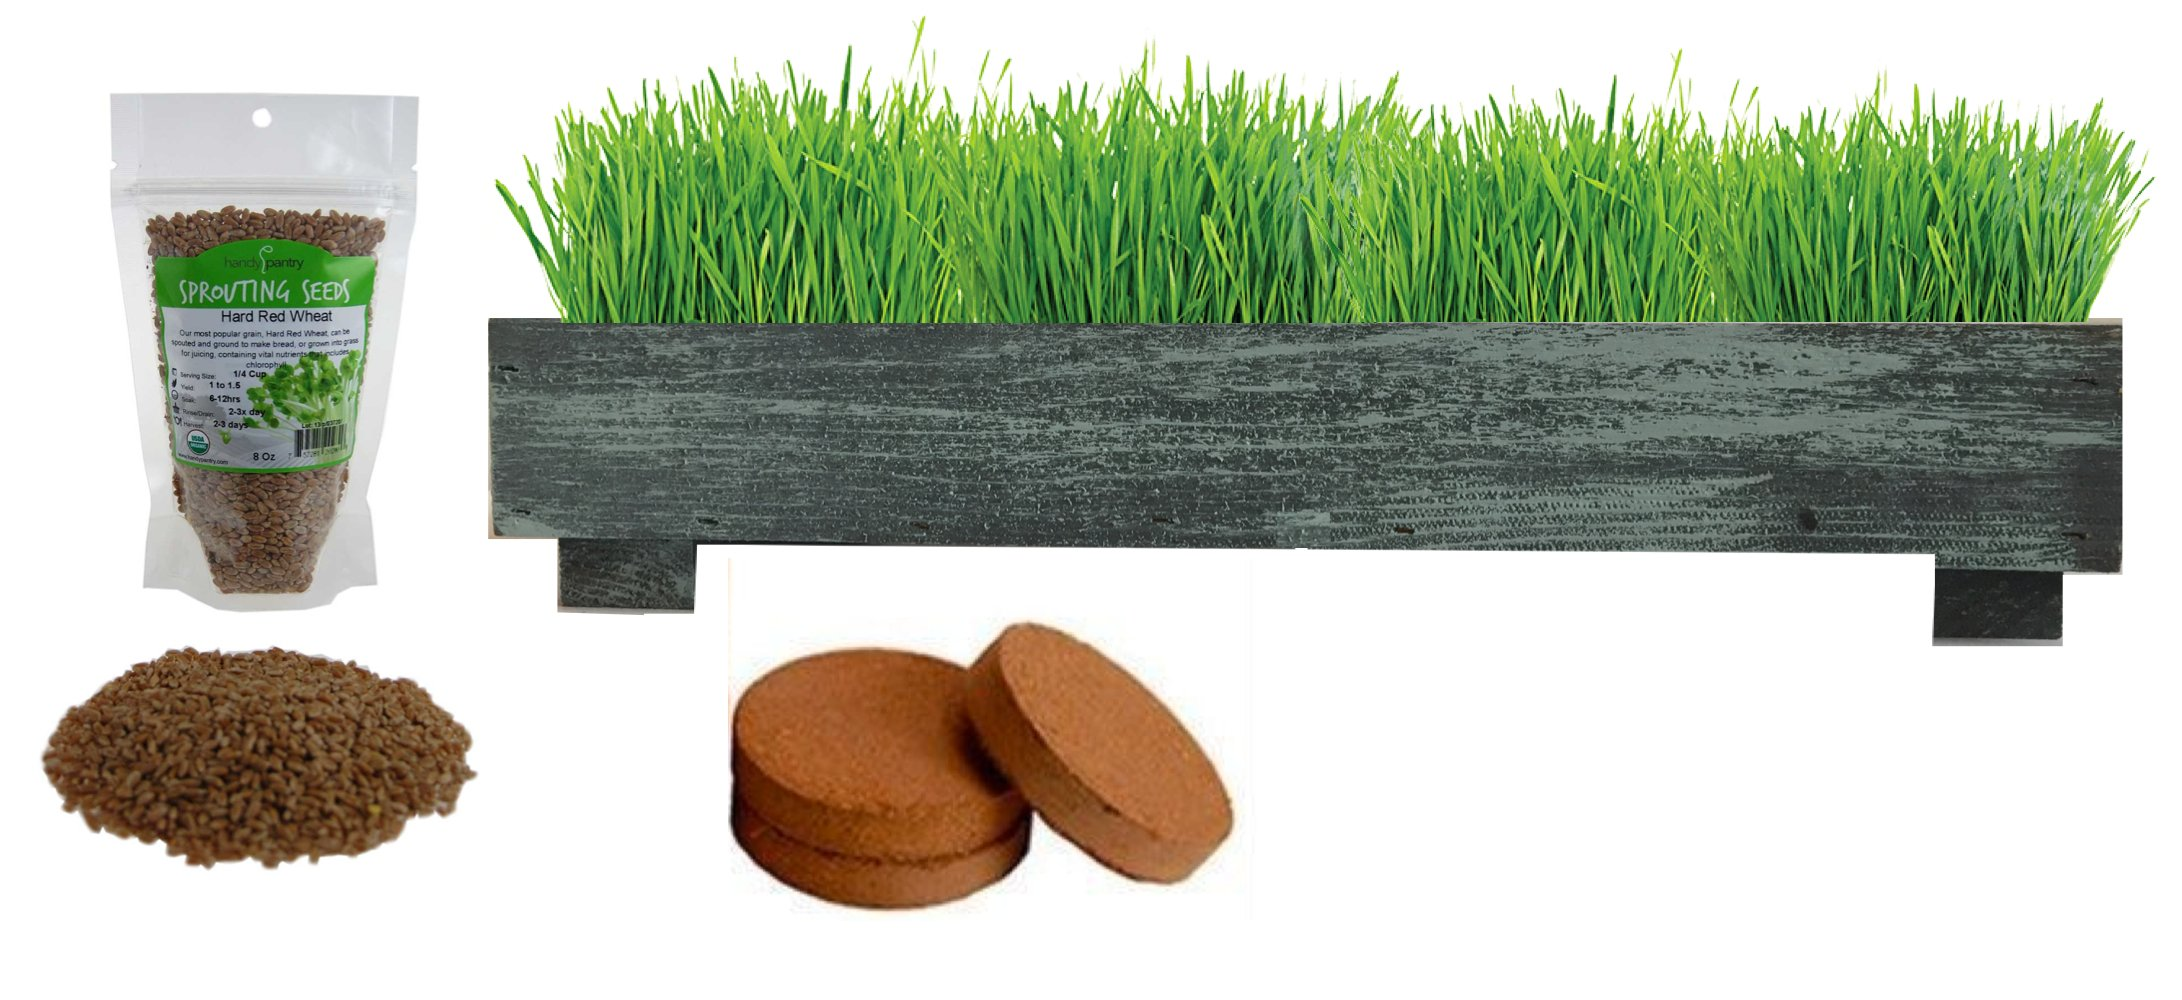 FATPLANTS Complete Organic Wheatgrass Kit in Cedar Planter, Organic Soil, Seeds and Instructions (Large, Coastal Turquoise)